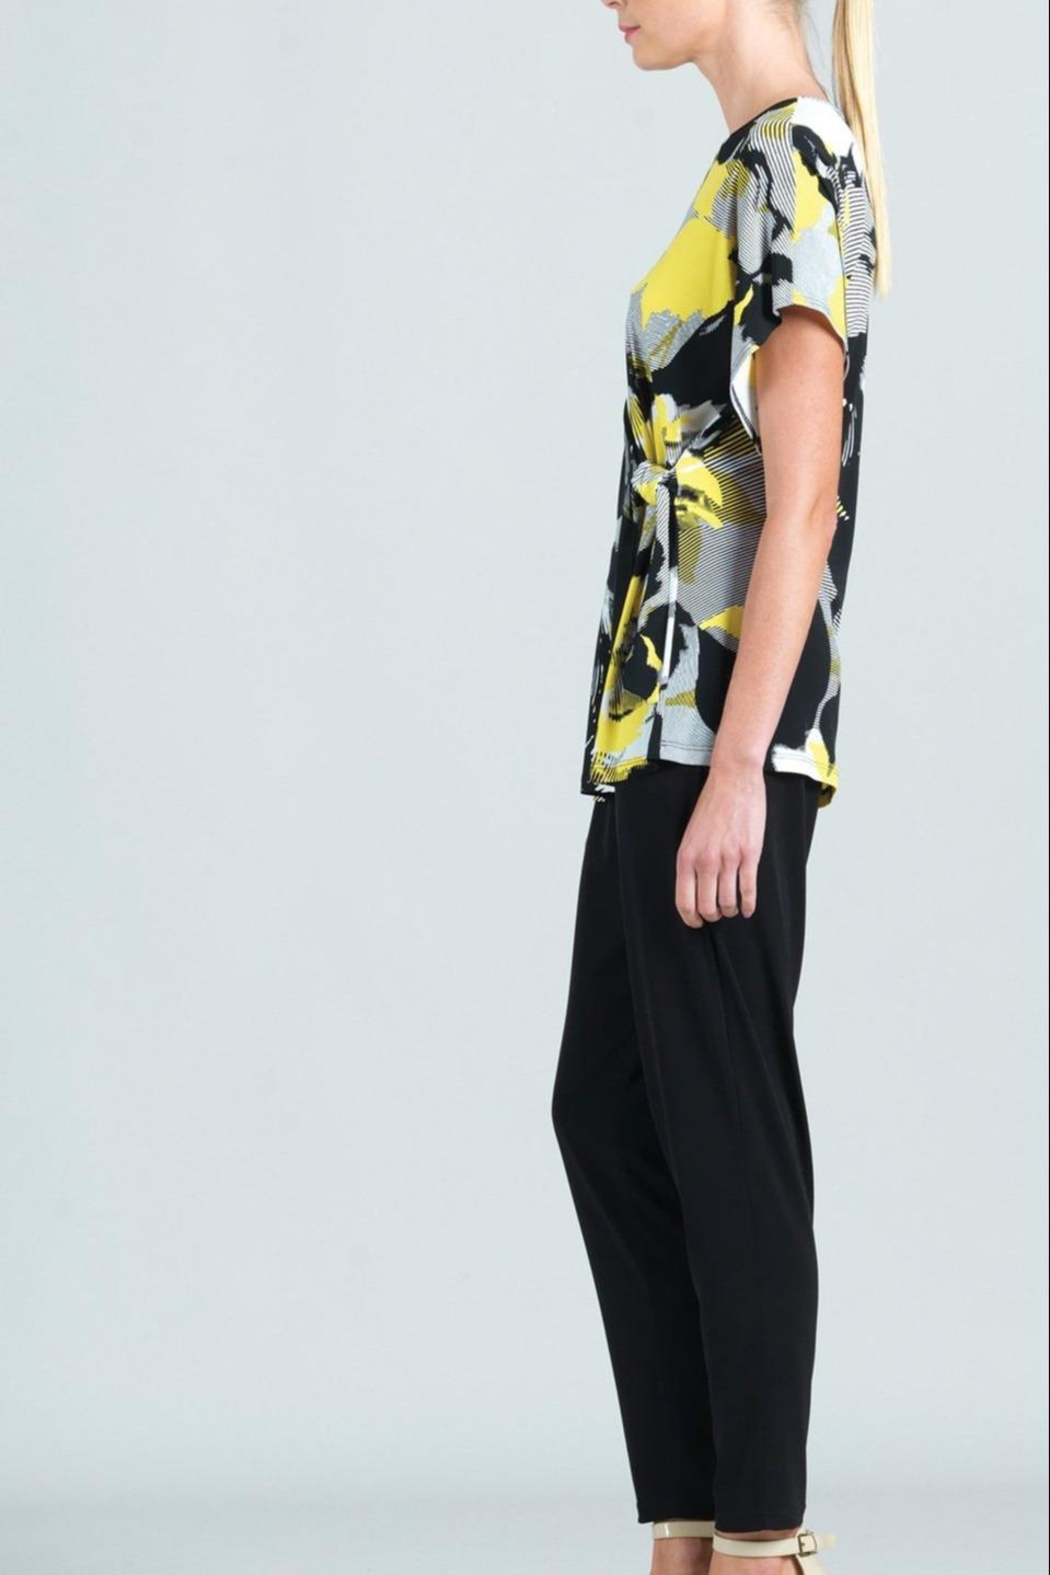 Clara Sunwoo Abstract-Floral Side-Tie Knit-Tunic - Front Full Image